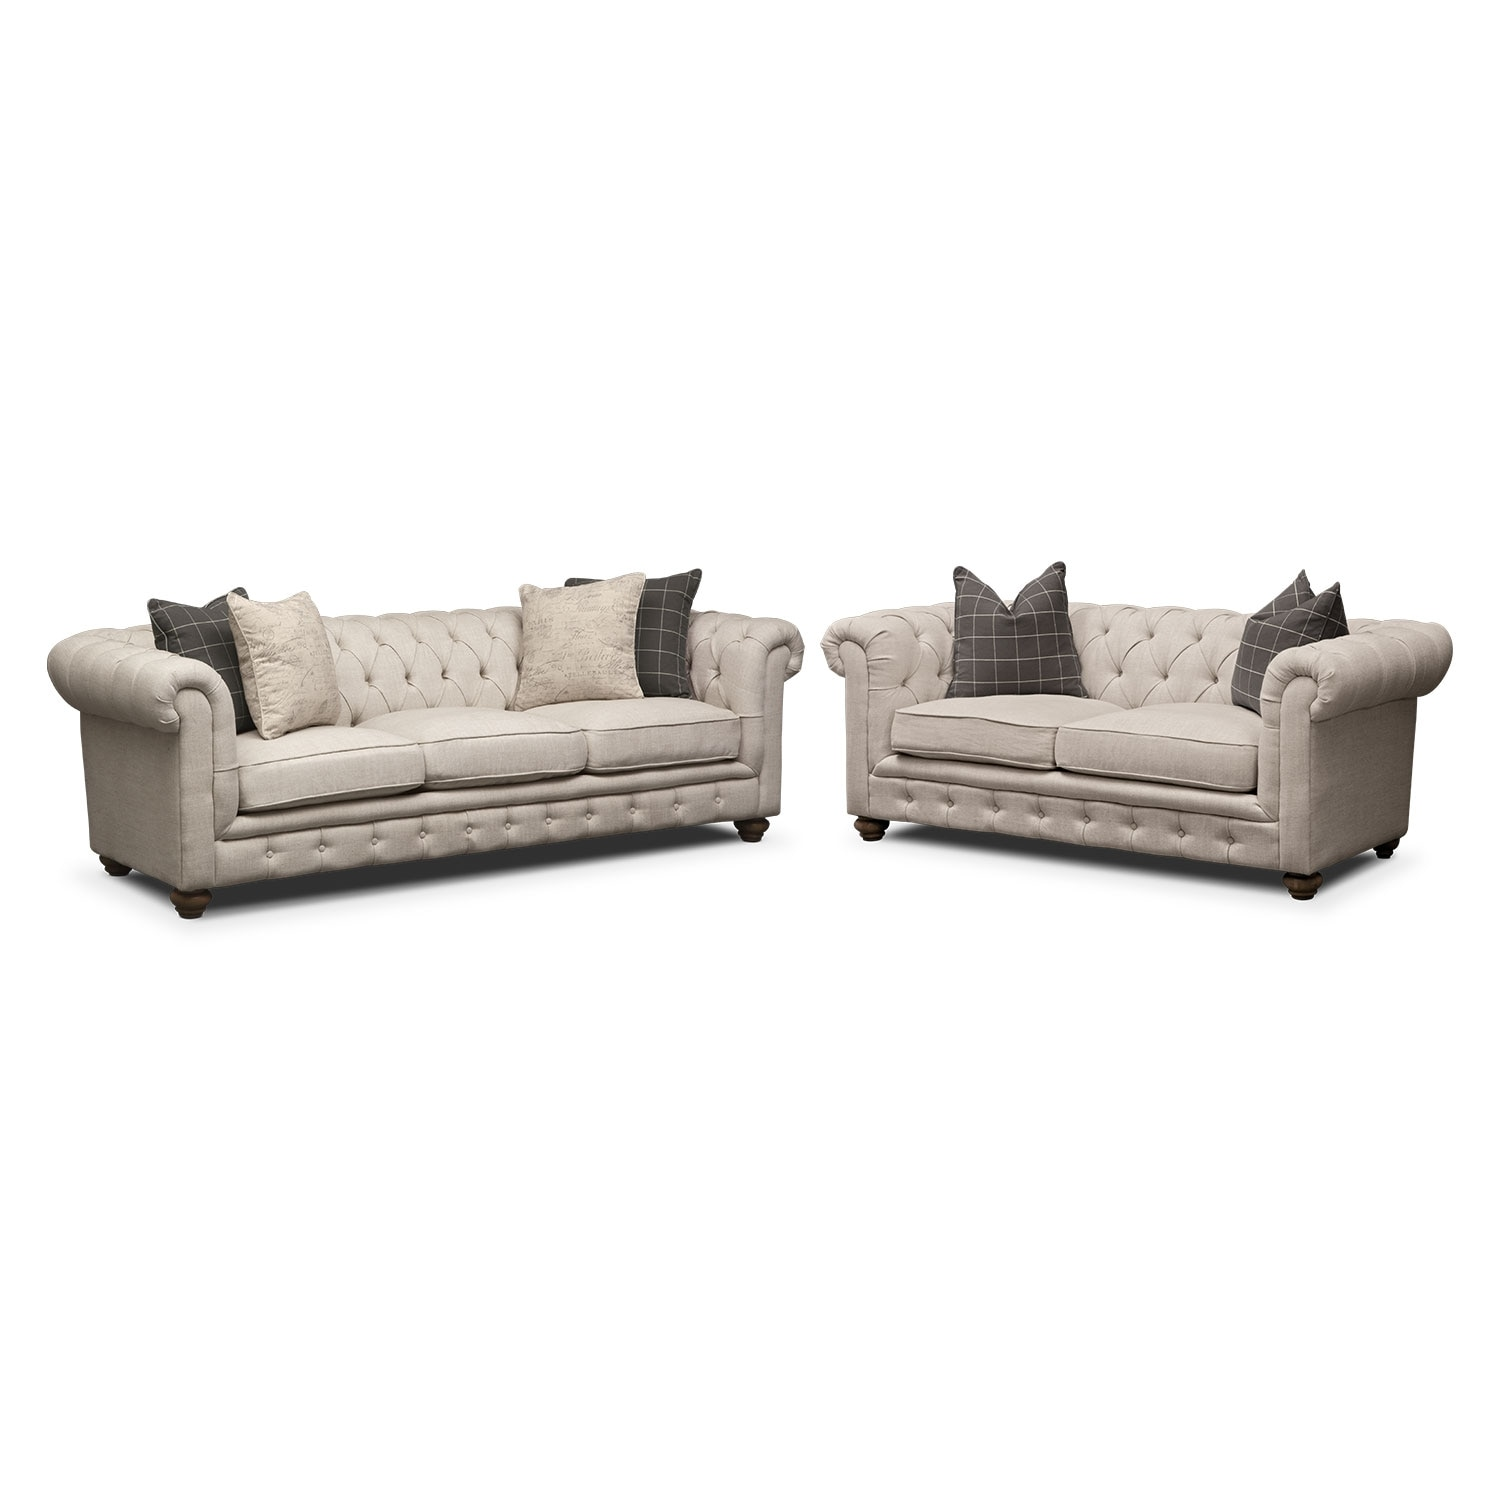 Living Room Furniture - Madeline Sofa and Apartment Sofa Set - Beige